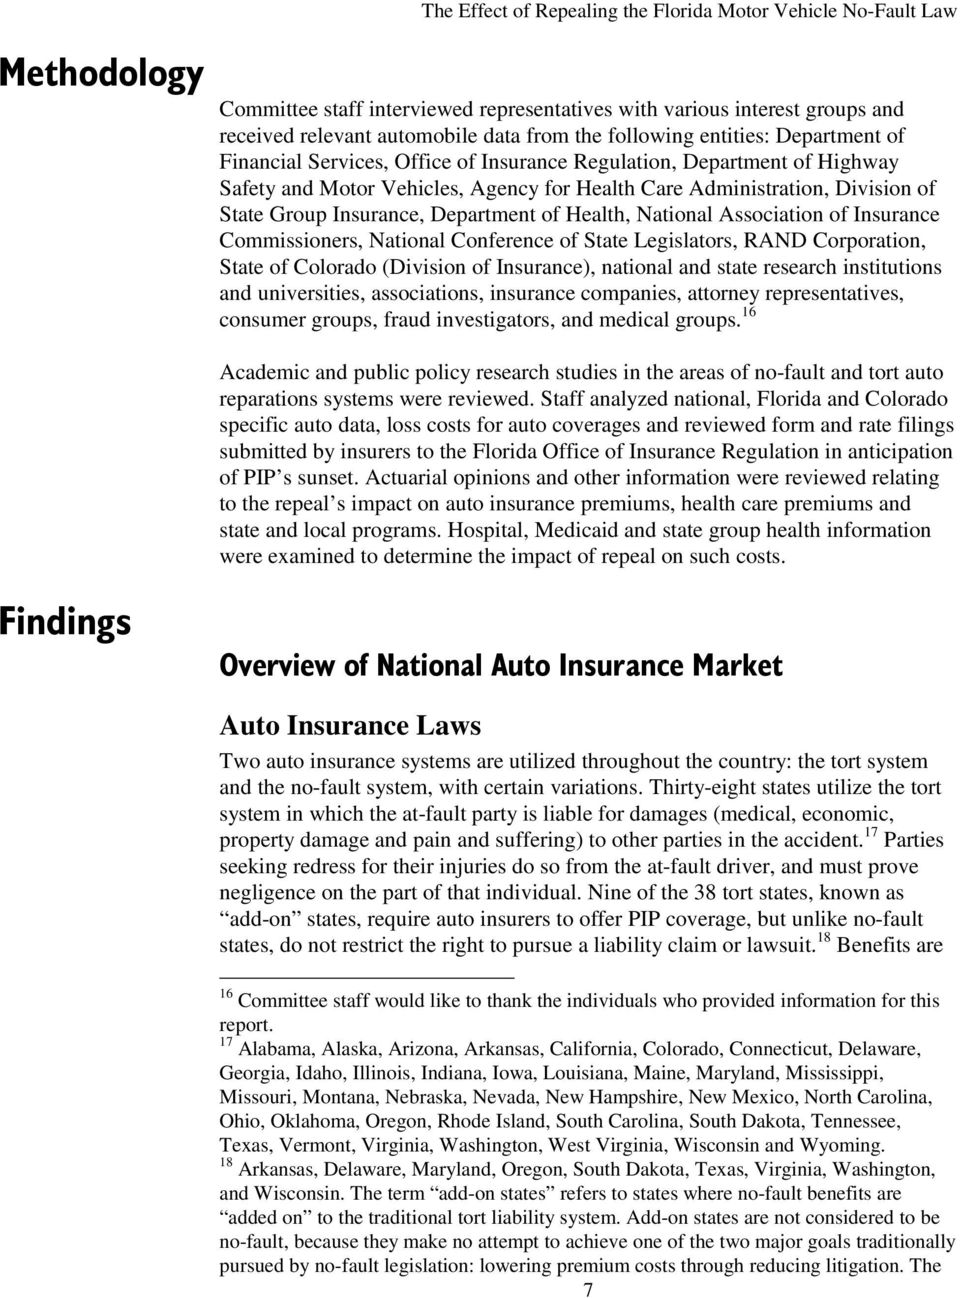 Insurance Commissioners, National Conference of State Legislators, RAND Corporation, State of Colorado (Division of Insurance), national and state research institutions and universities,